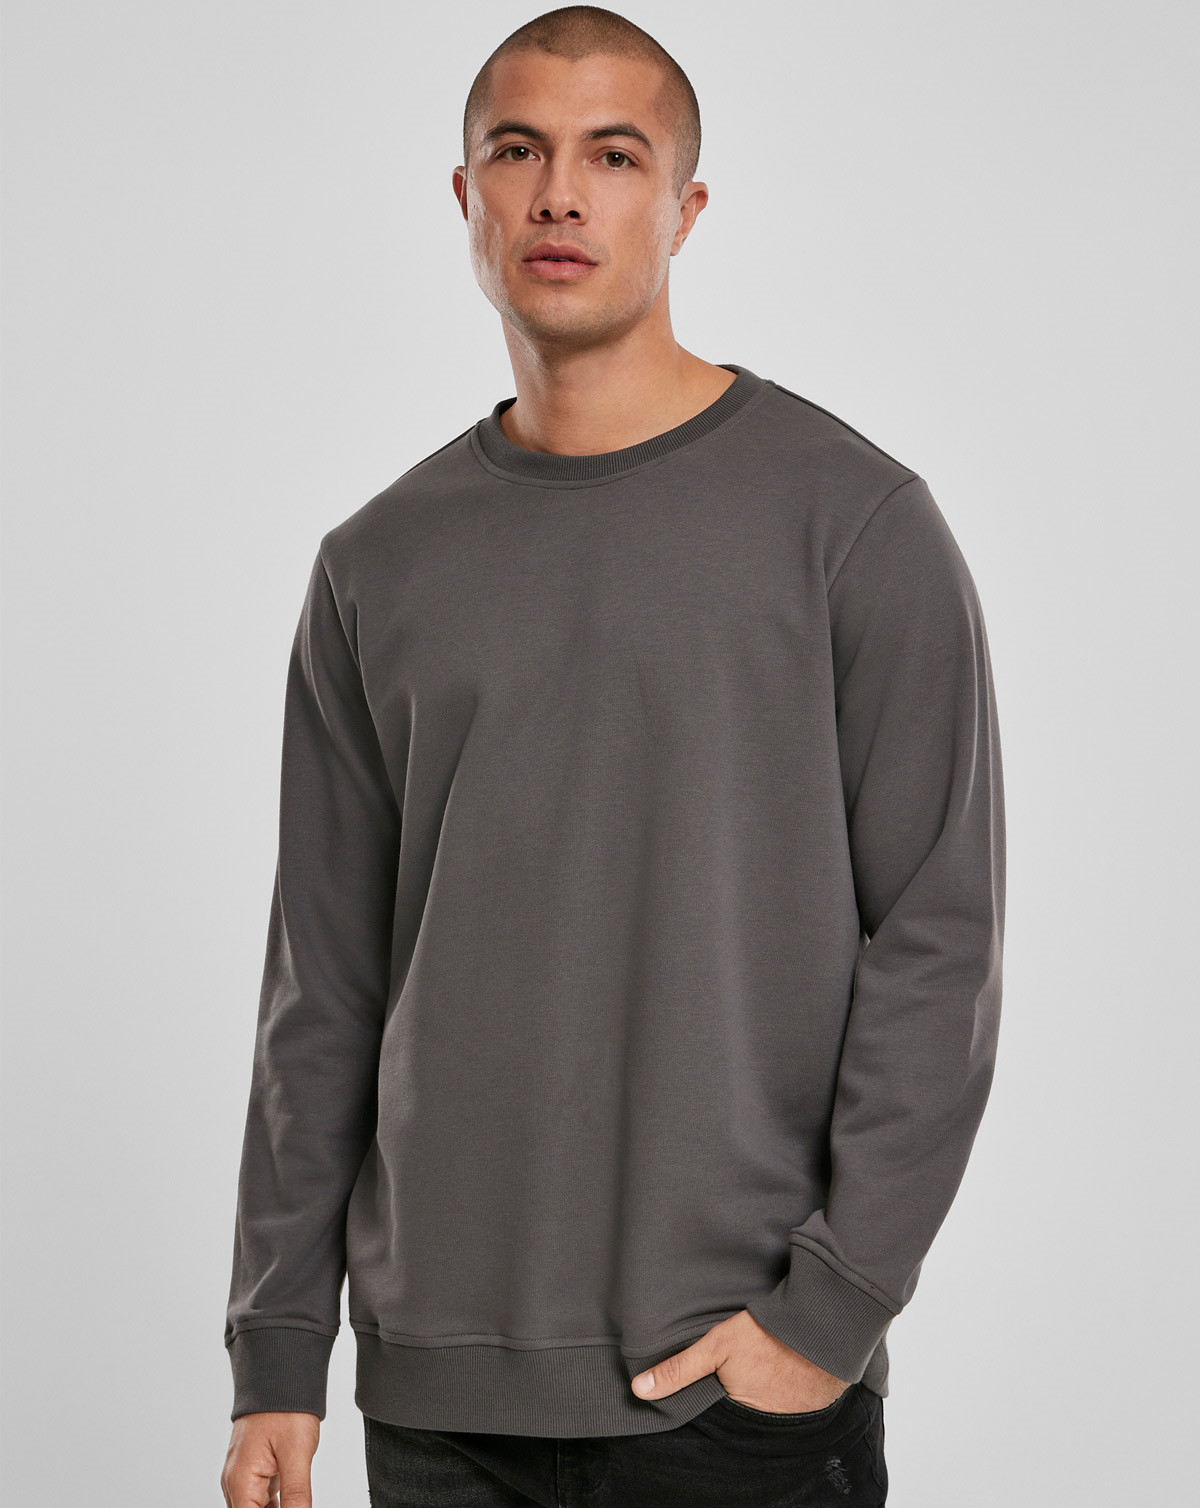 Urban Classics Basic Terry Crewneck (Dark Shadow, 2XL)